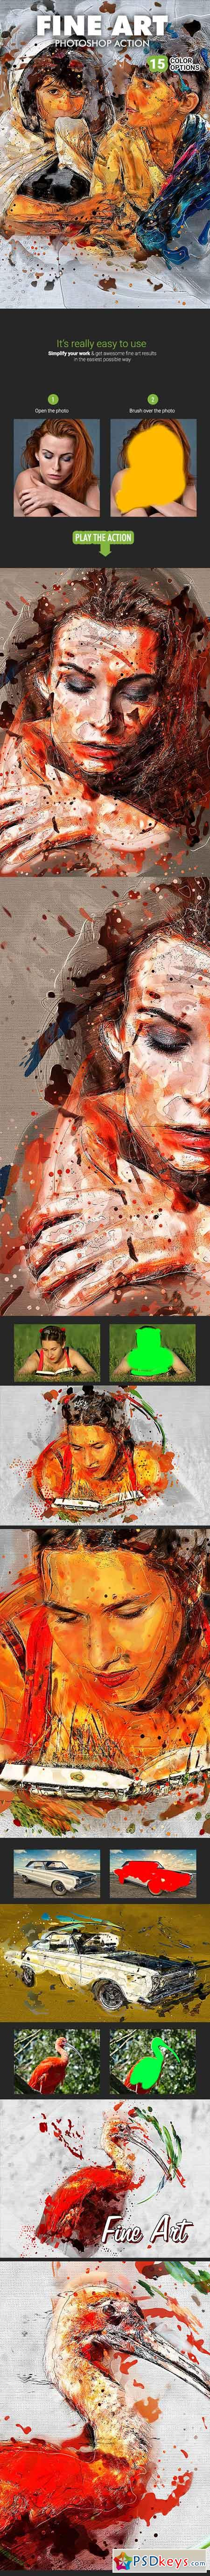 Fine Art Photoshop Action 19511595